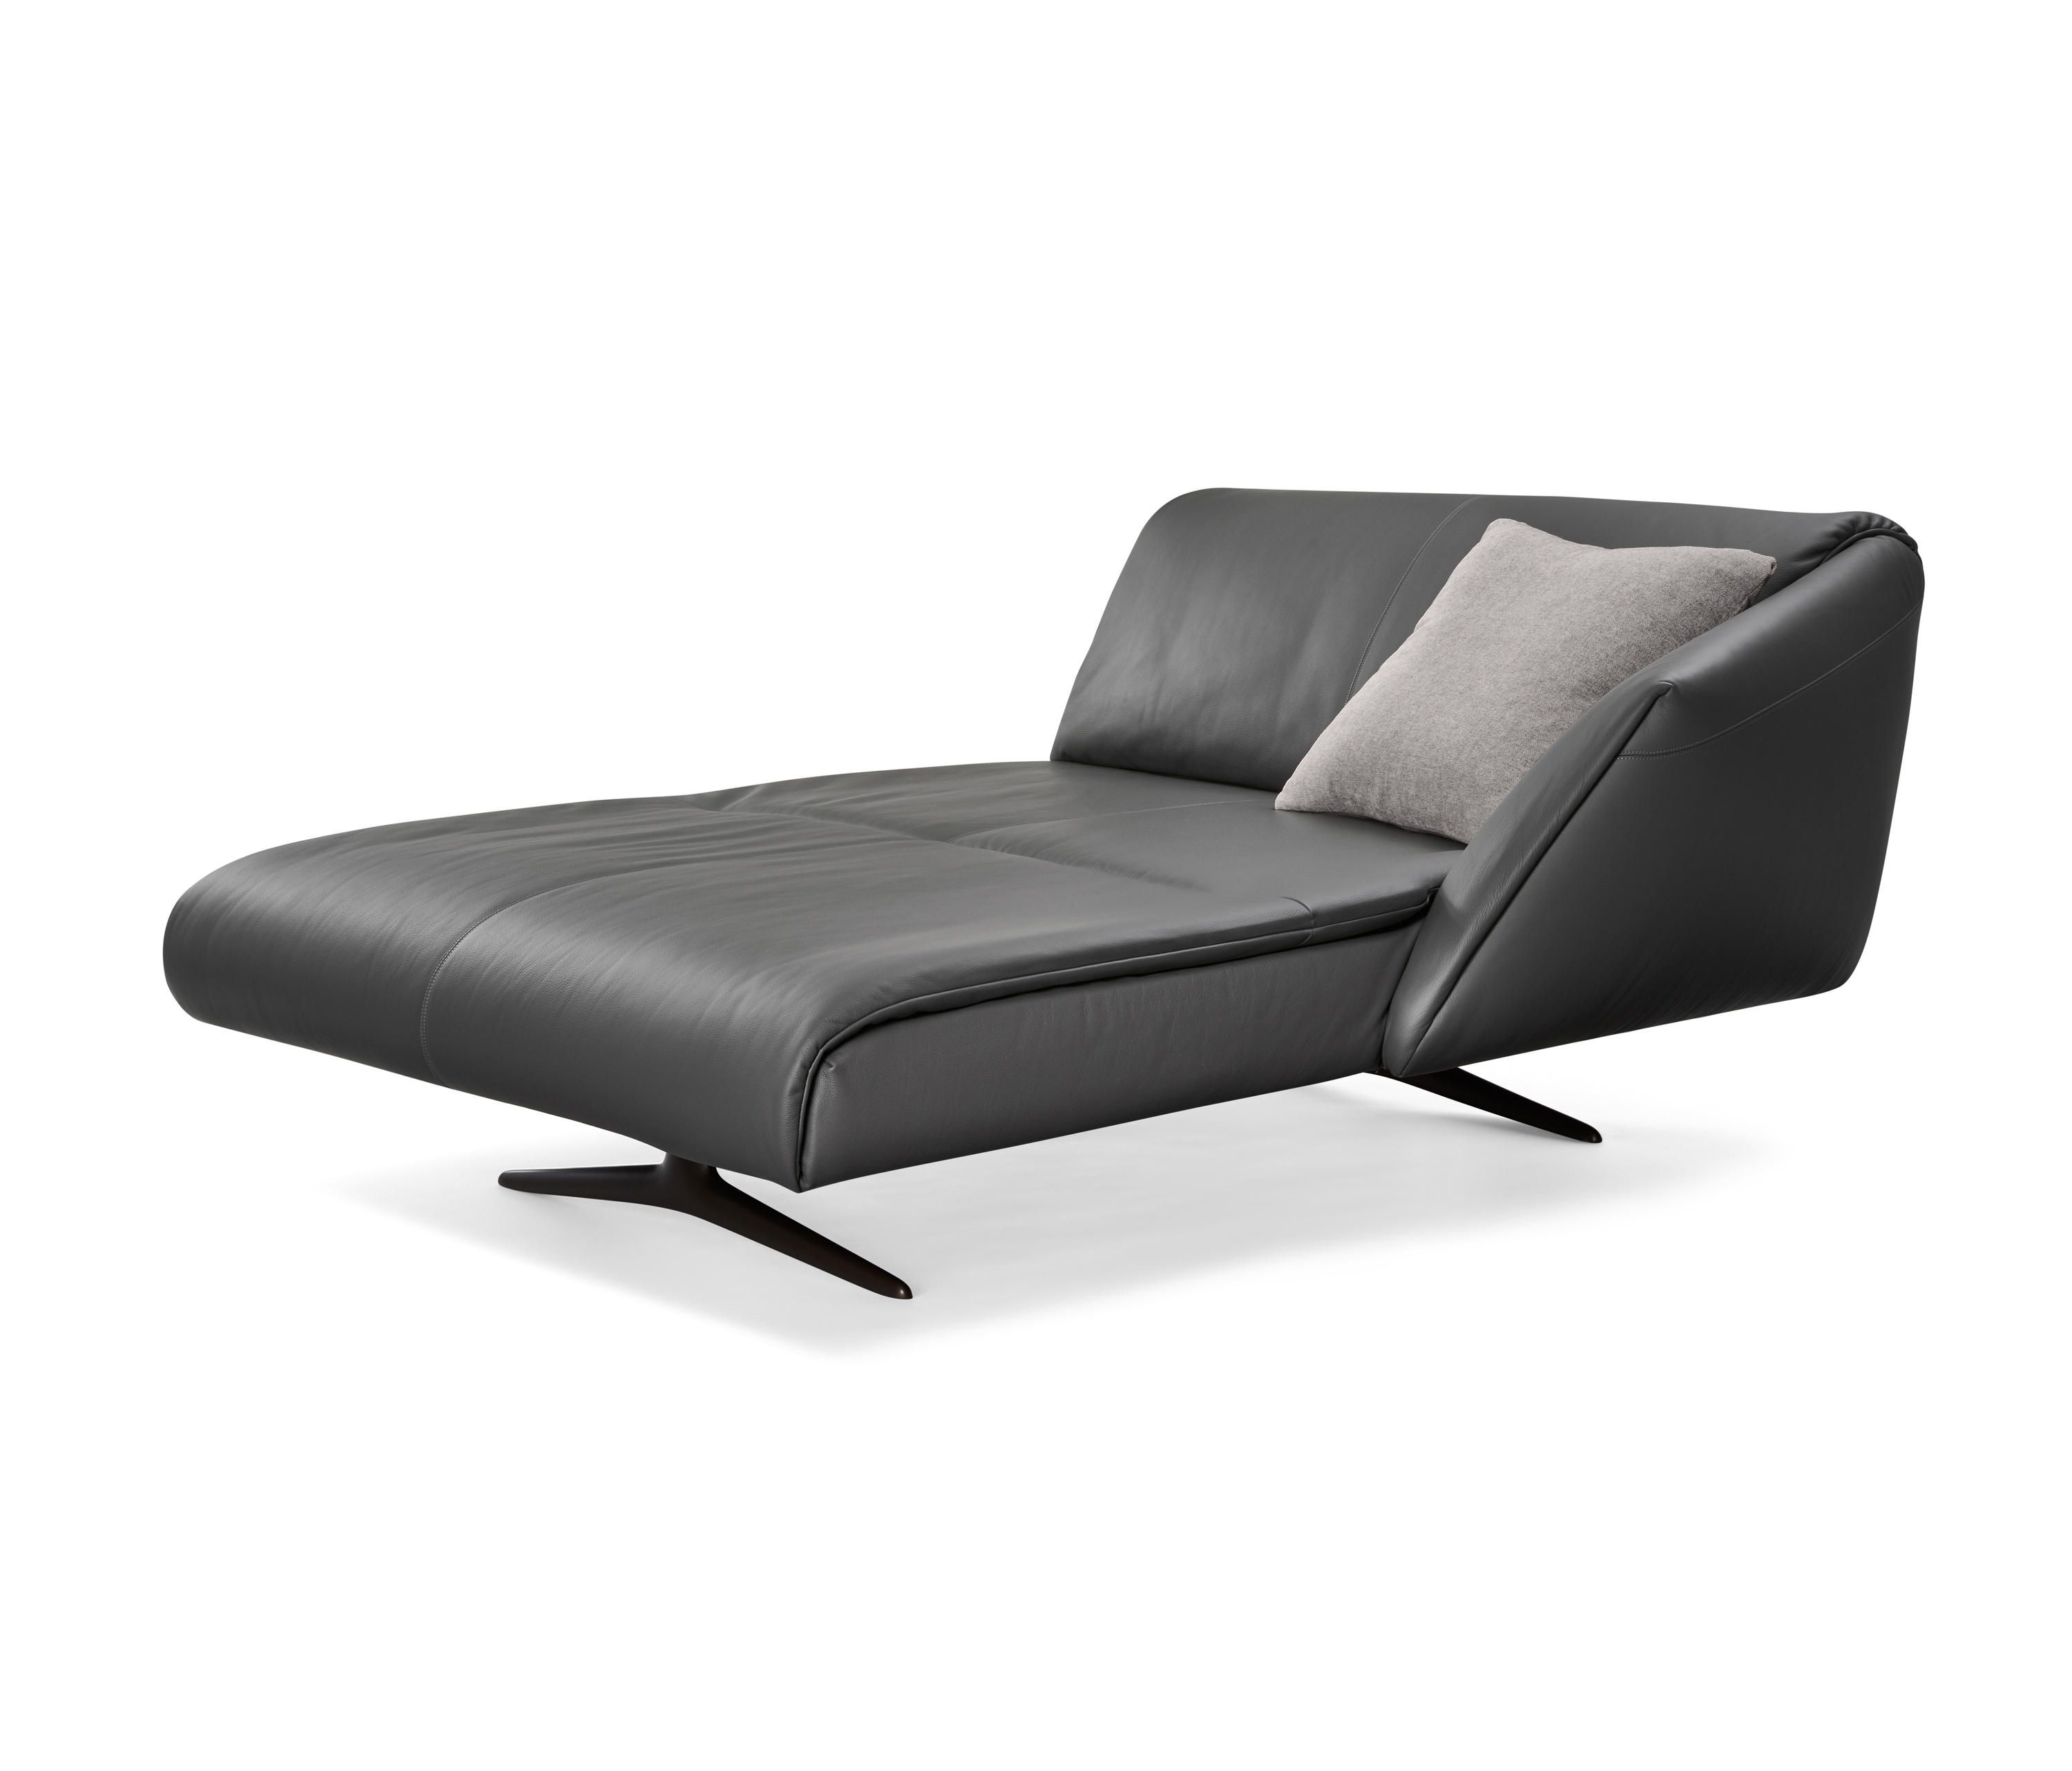 Walter Knoll Sofa Bundle Sofa Sofas From Walter Knoll Architonic Entertainment